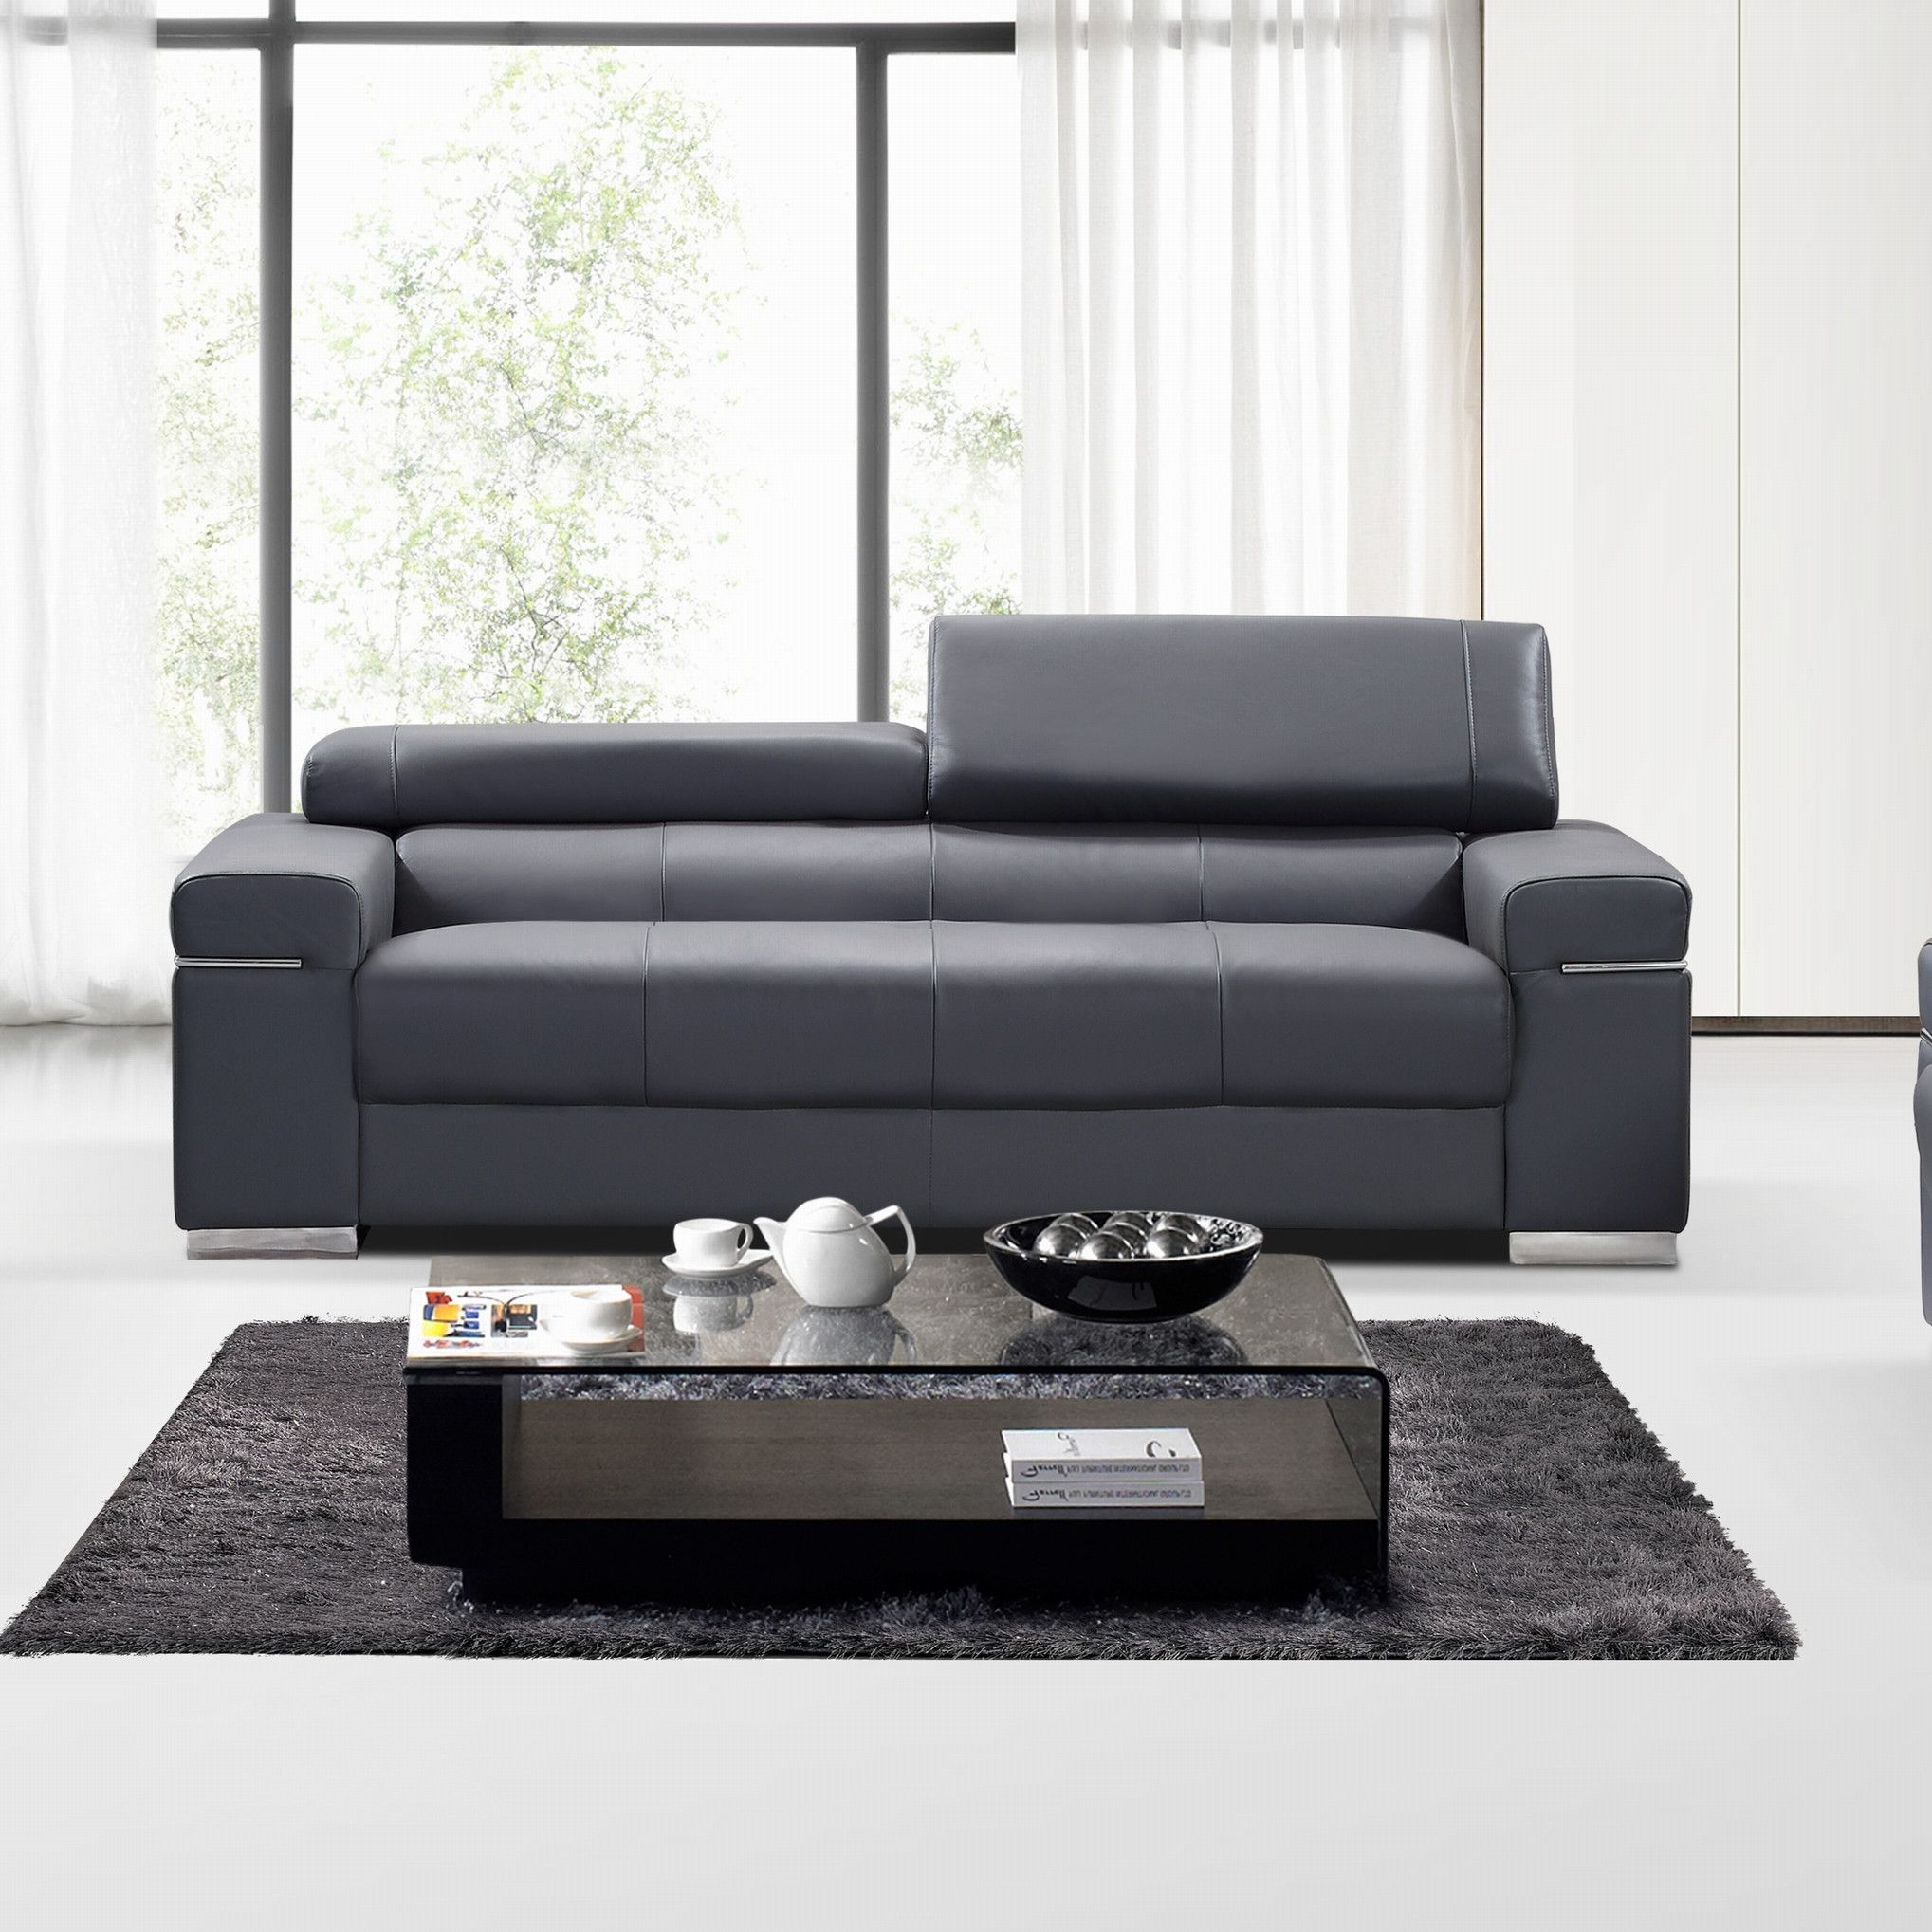 Sectional Sofa Found it at AllModern Orlando Living Room Collection